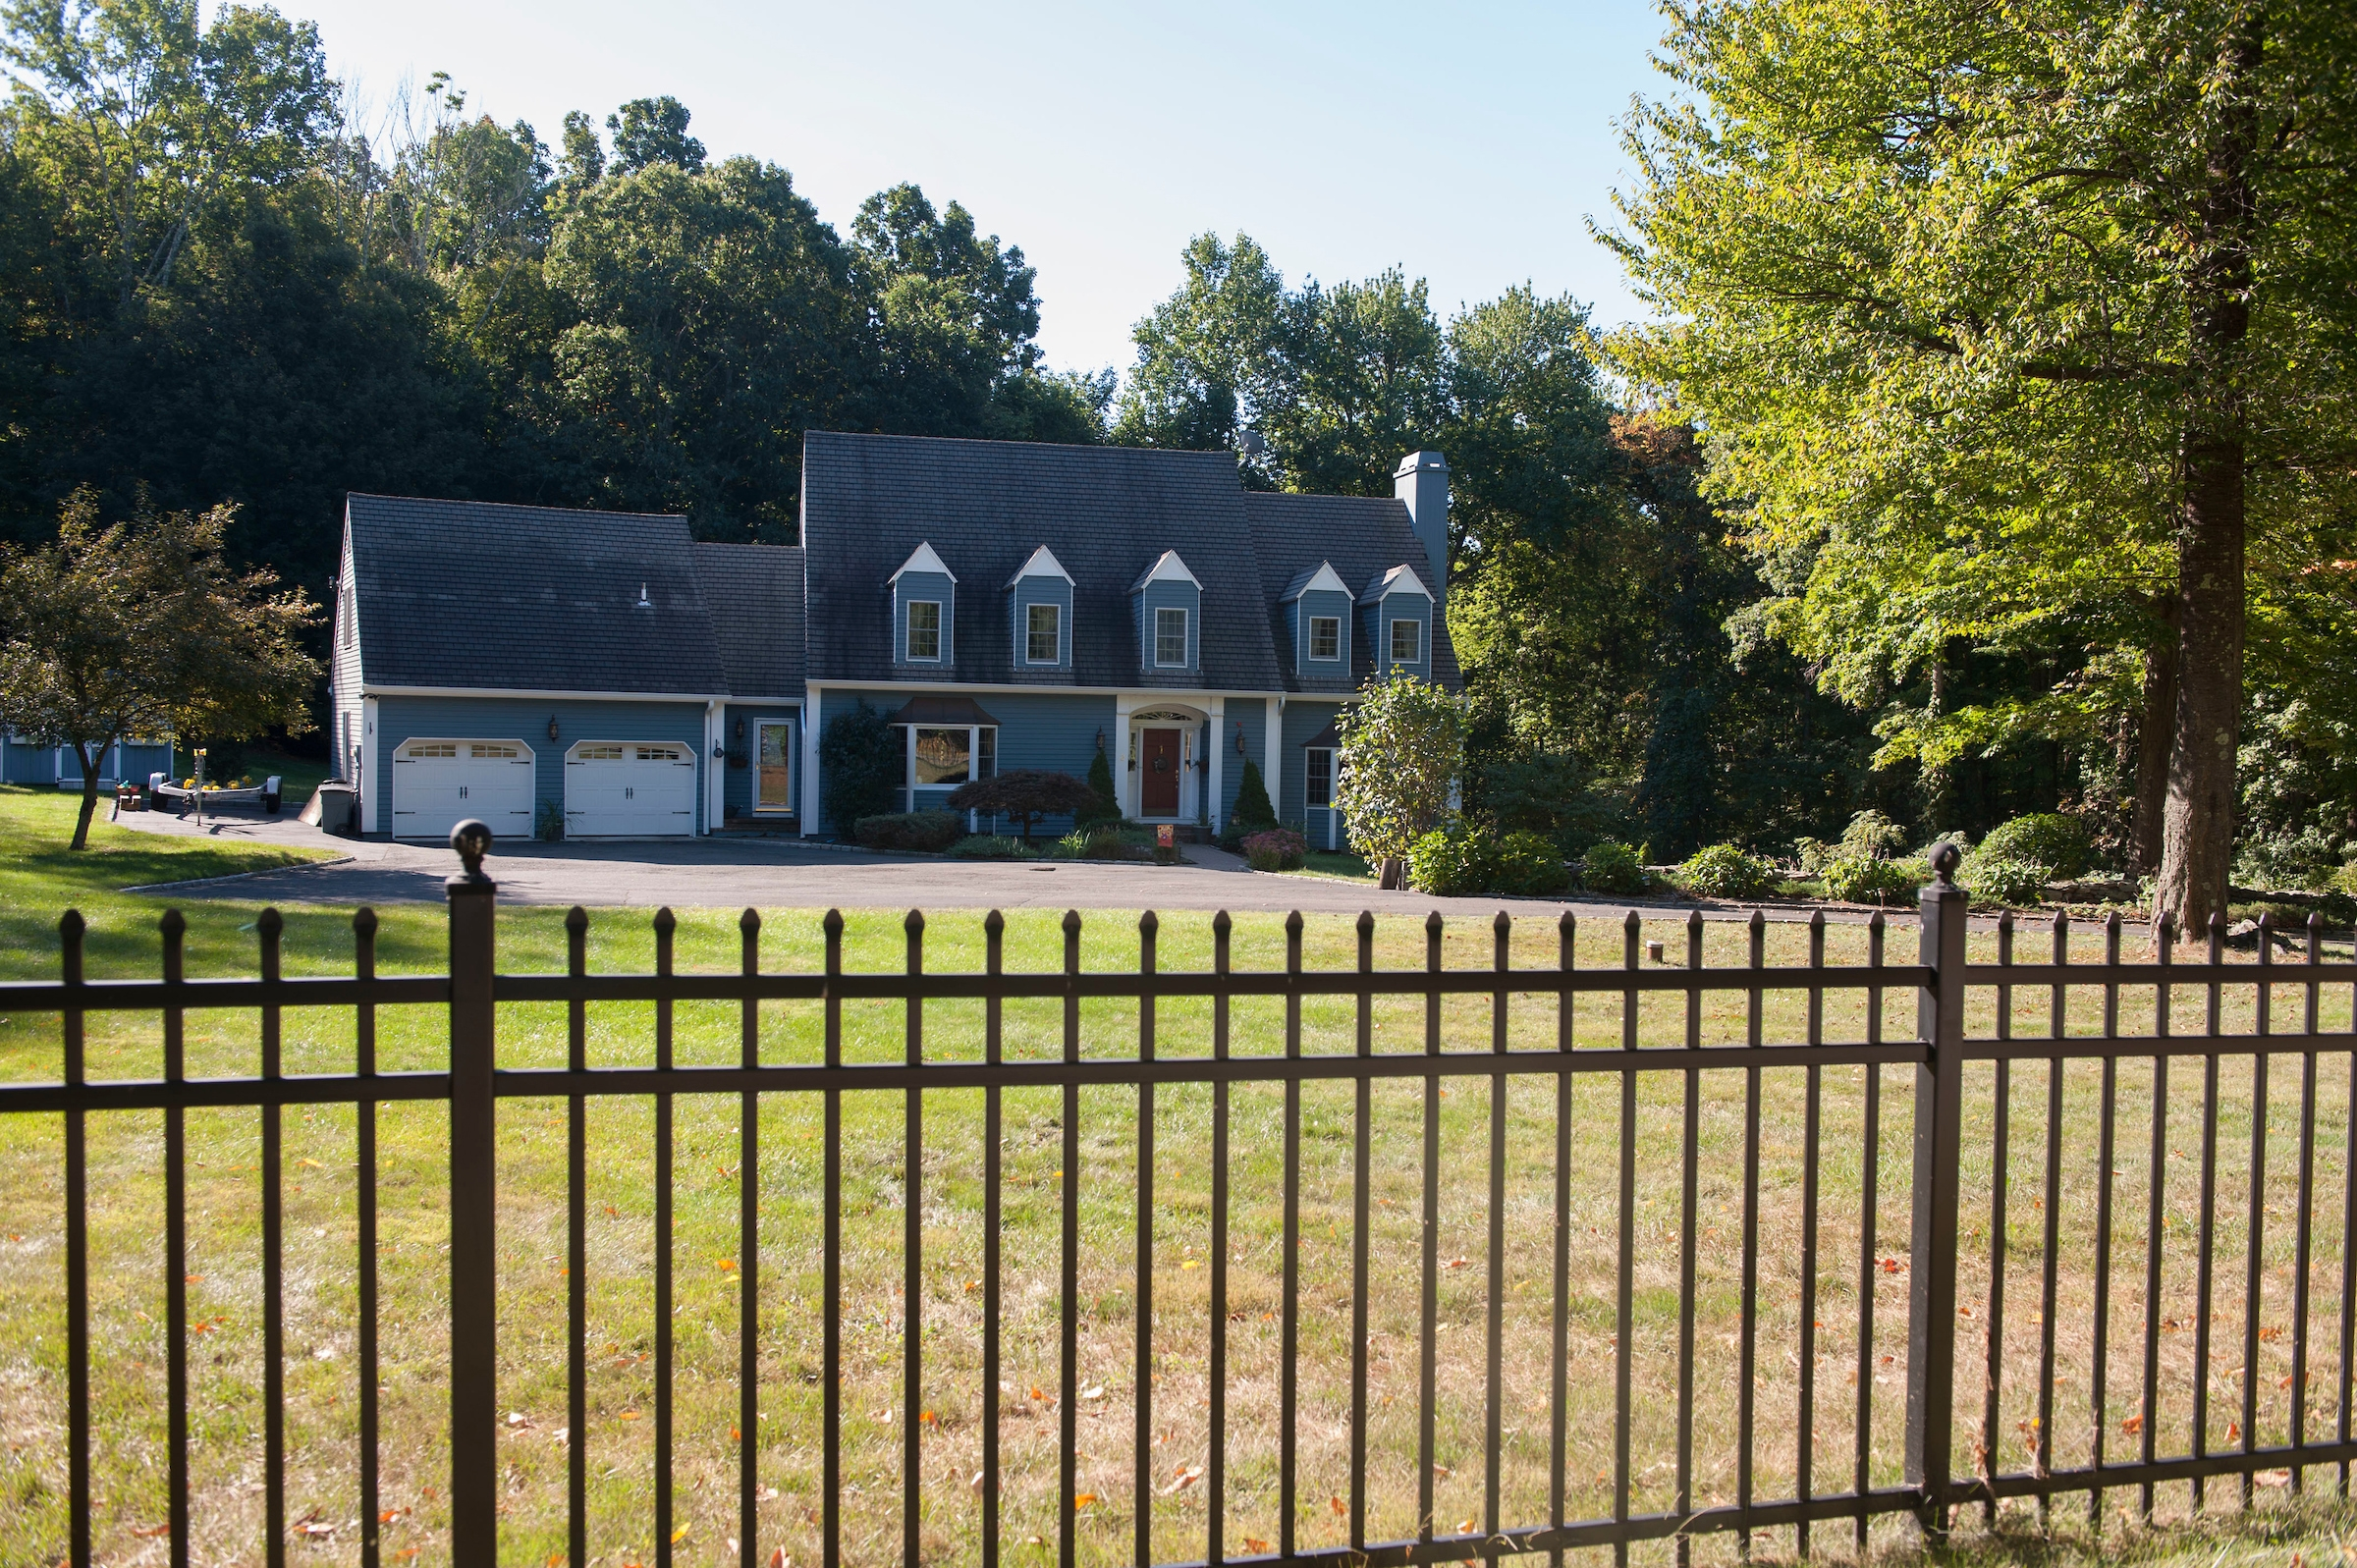 Home of Lisa Toscano-Percoco and her husband Joe Percoco,  Thursday Sept. 22, 2016 in South Salem N.Y. . Joe Percoco a former close aide to N.Y. Gov. Andrew Cuomo is being charged Thursday with bribery , corruption and fraud in connection to awarding contracts in up-state N.Y.  .   (Photo/Douglas Healey).